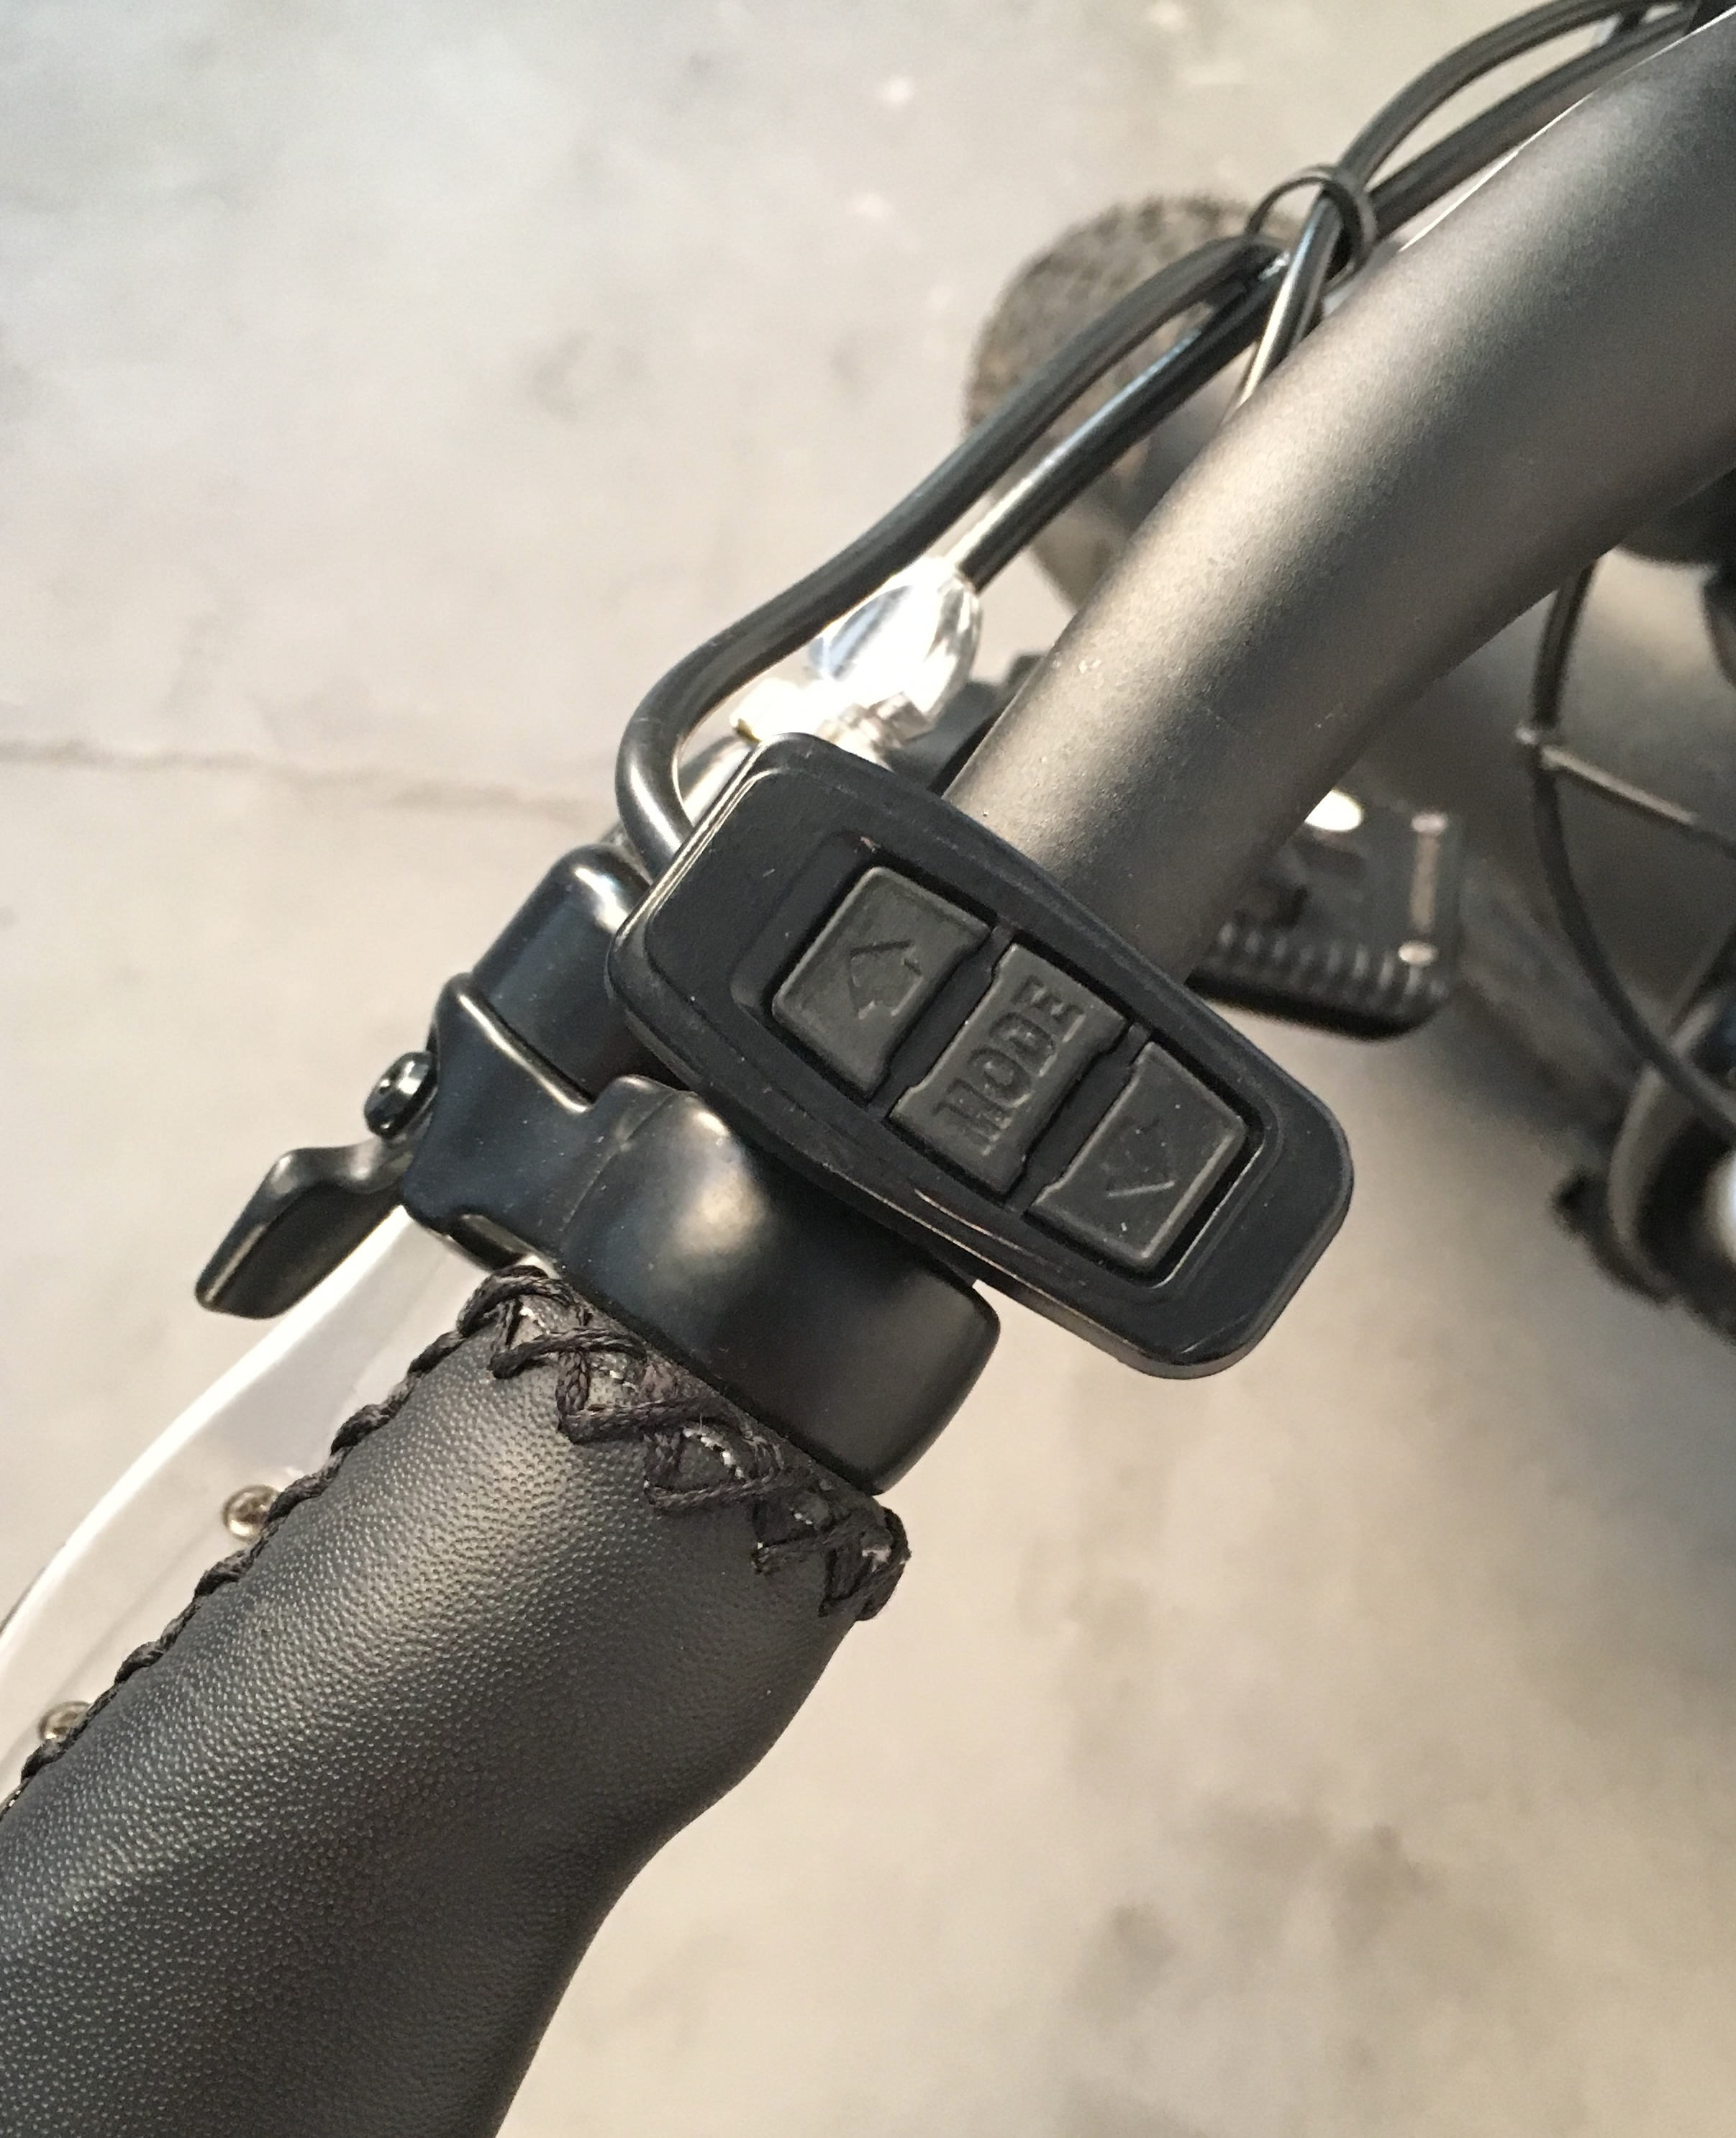 How To Replace The Display On Your Bike Rad Power Bikes Auto Wiring Harness Replacement Next Unplug Connection Radrover Radmini And Radcity Will All Have Silver Connections That Need Be Unscrewed